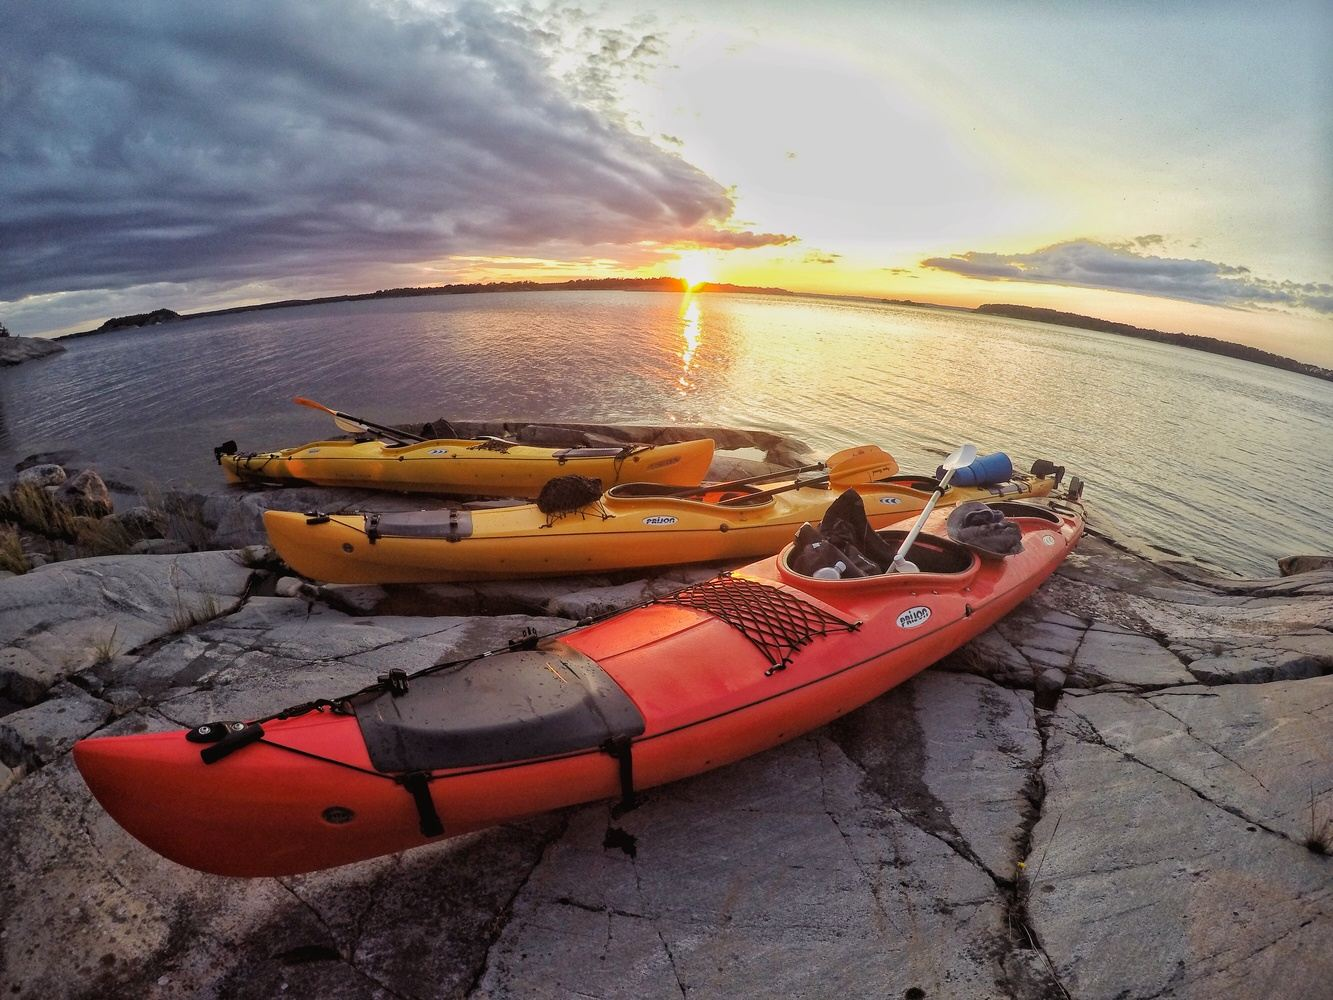 Kayaking and wild camping the Stockholm Archipelago